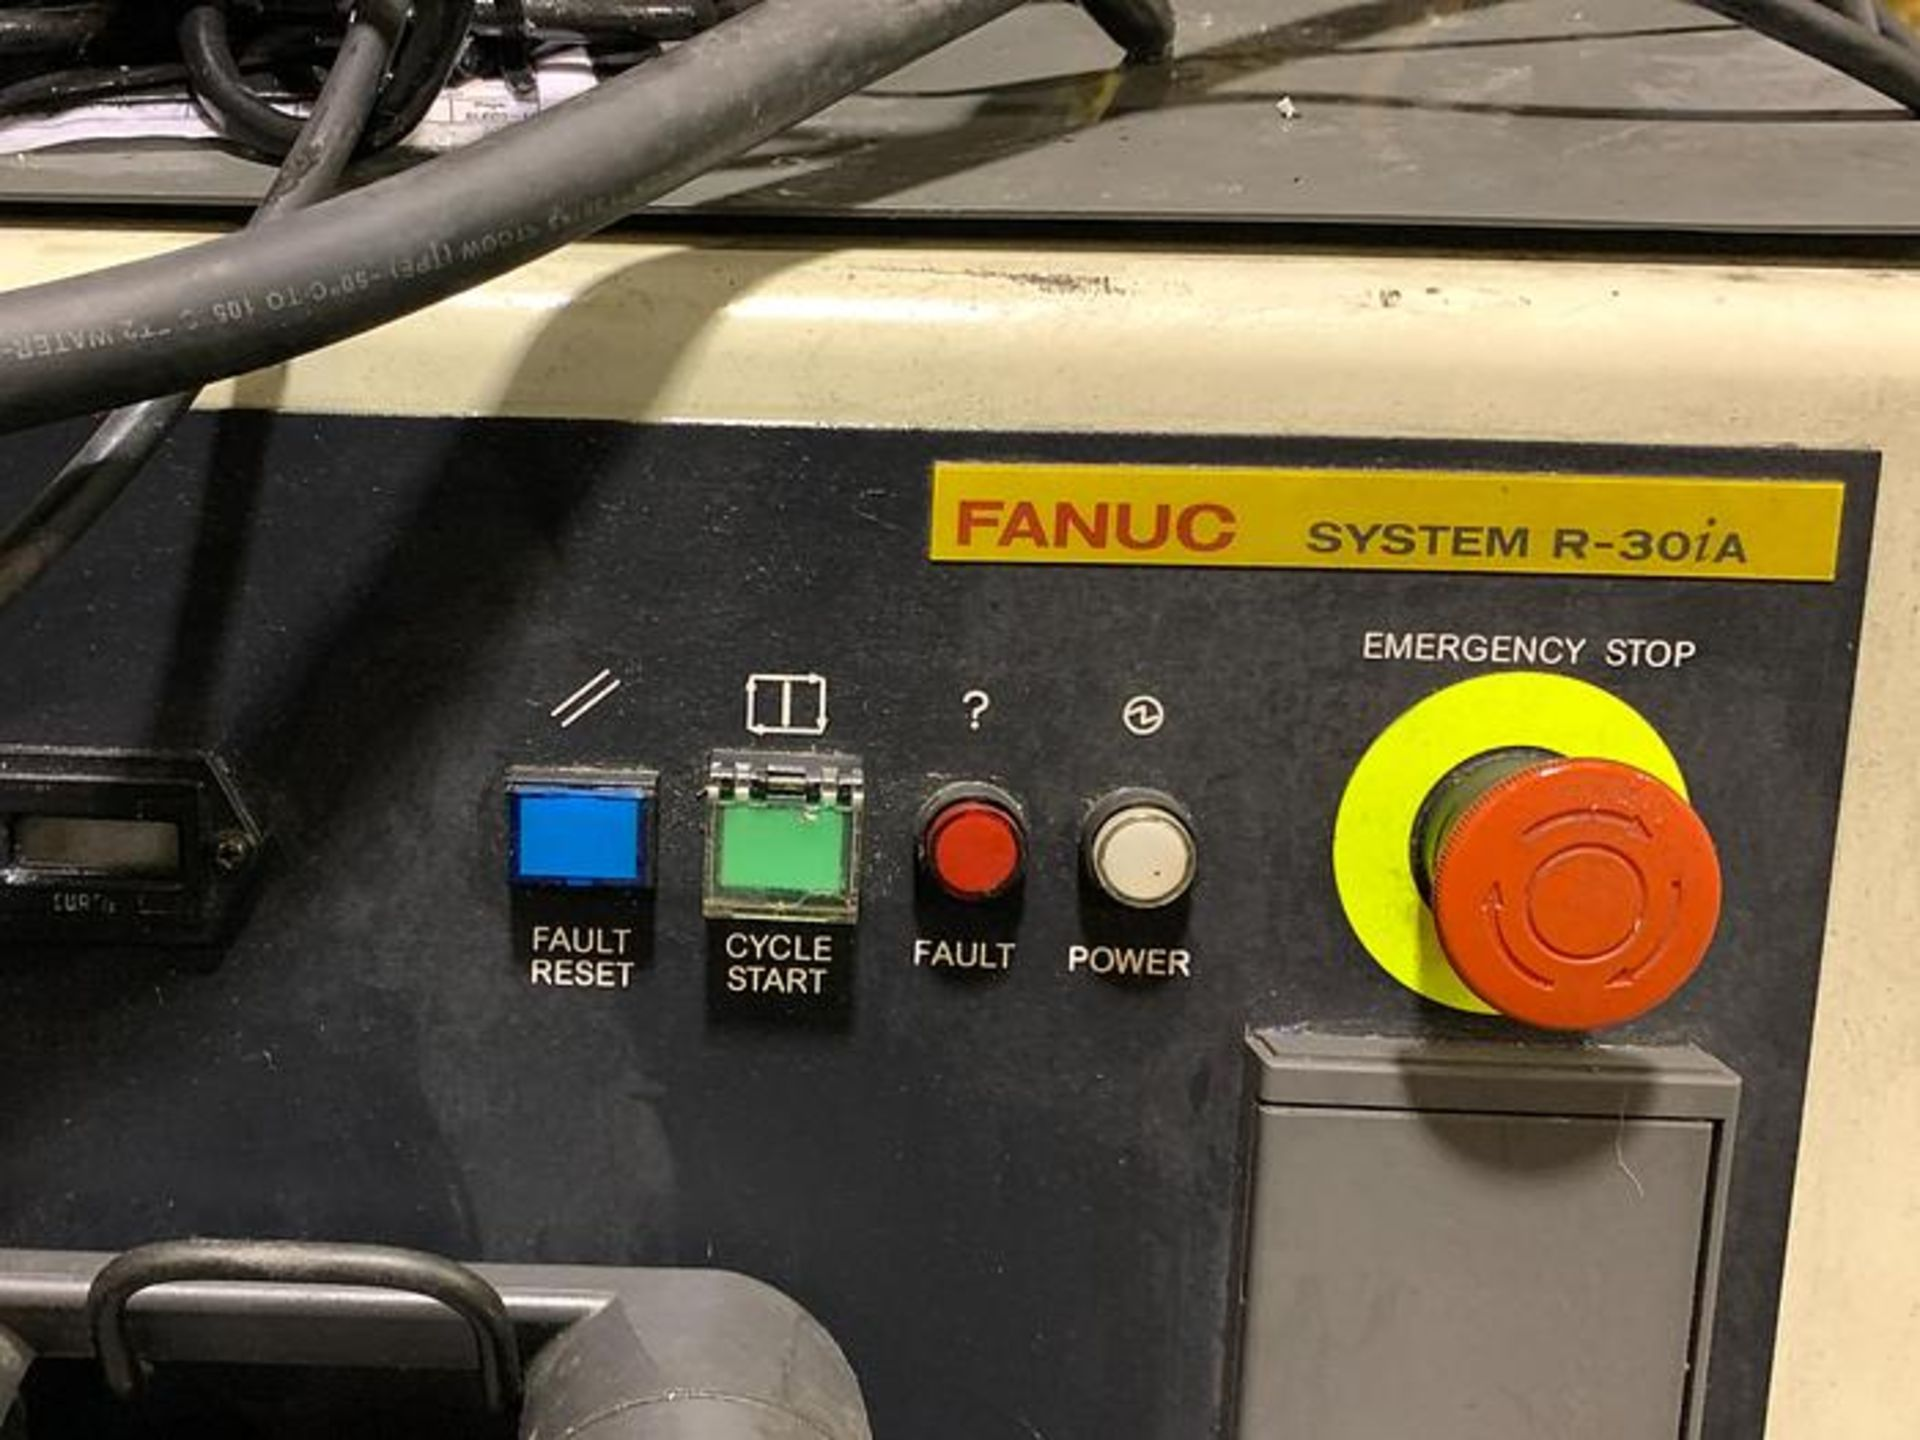 FANUC M710iC/50 6 AXIS CNC ROBOT WITH R30iA CONTROLLER AND VISION CONNECTIONS, SN 109513, YEAR 2011 - Image 6 of 8